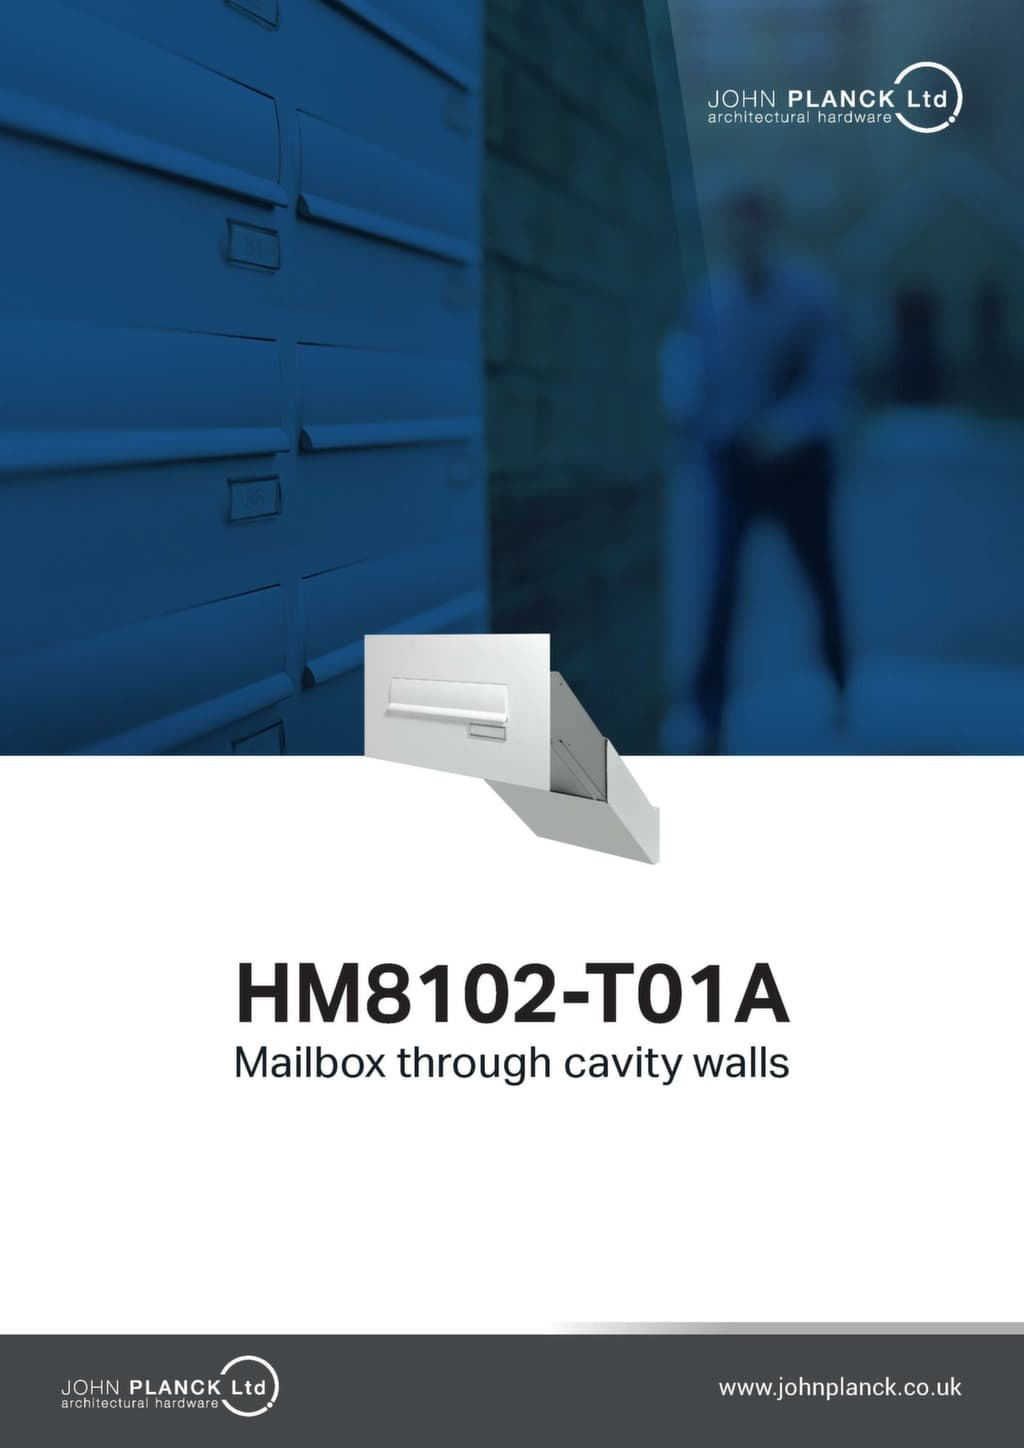 HM8102-T01A